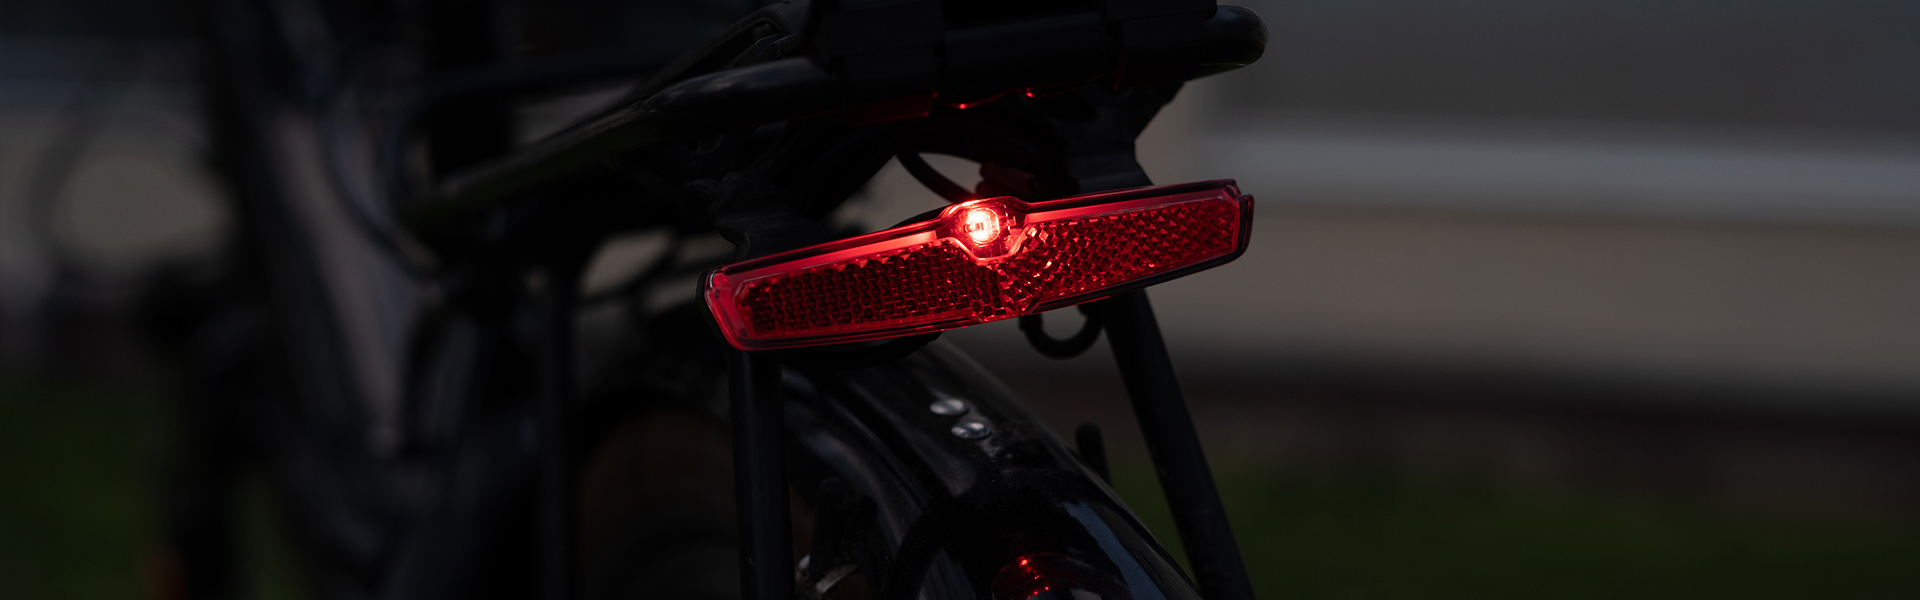 C4-P Sate-Lite e-scooter/ ebike/ bicycle front lamp/ dynamo bike light